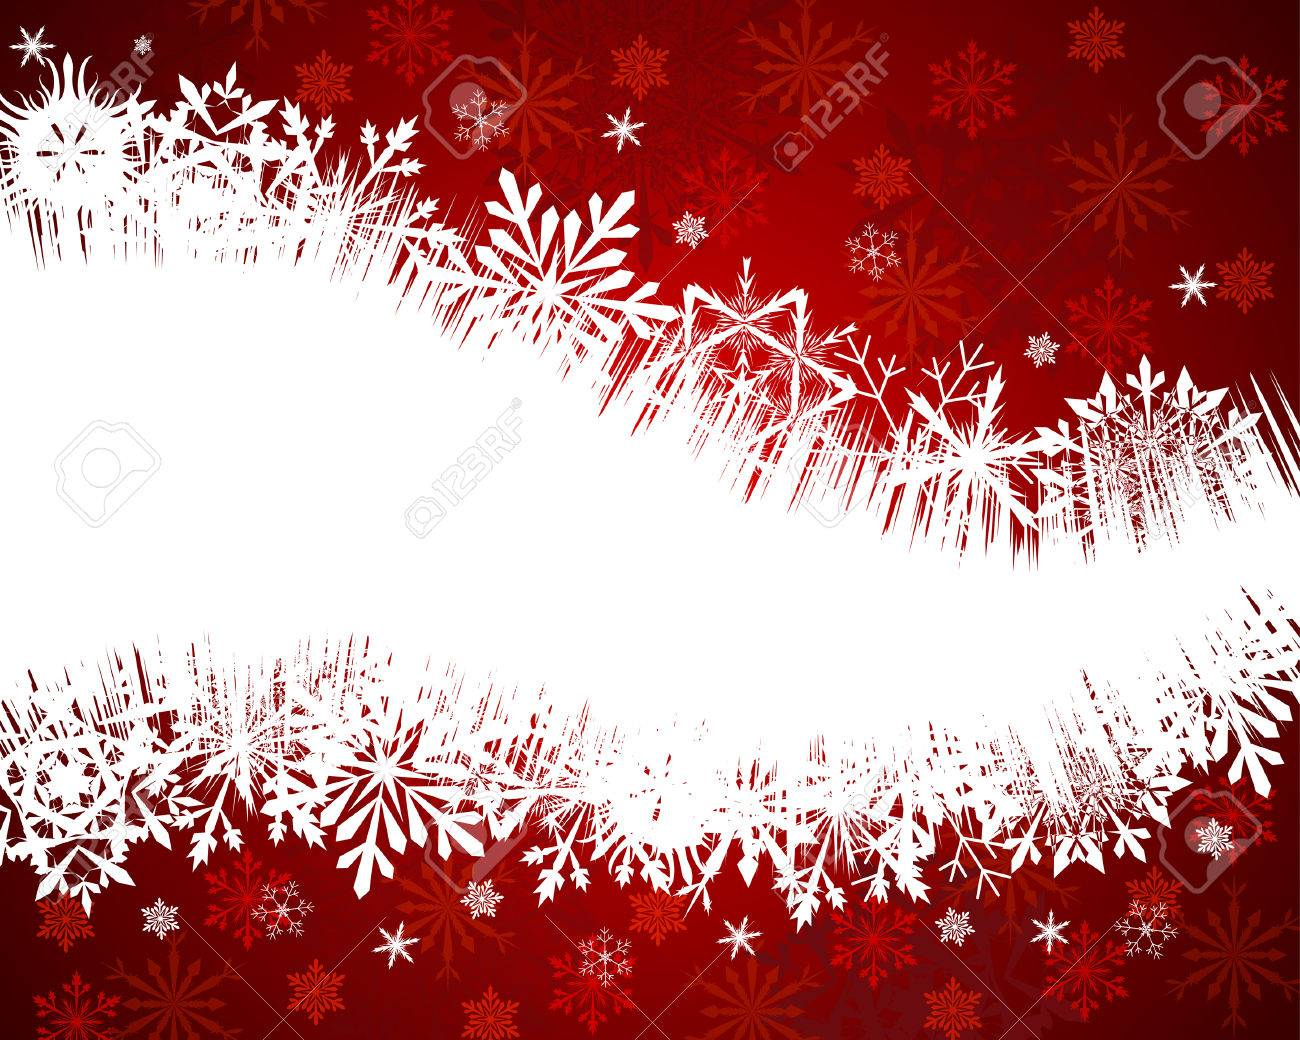 Beautiful vector christmas new year background for design use - Beautiful Vector Christmas New Year Background For Design Use Stock Vector 5735250